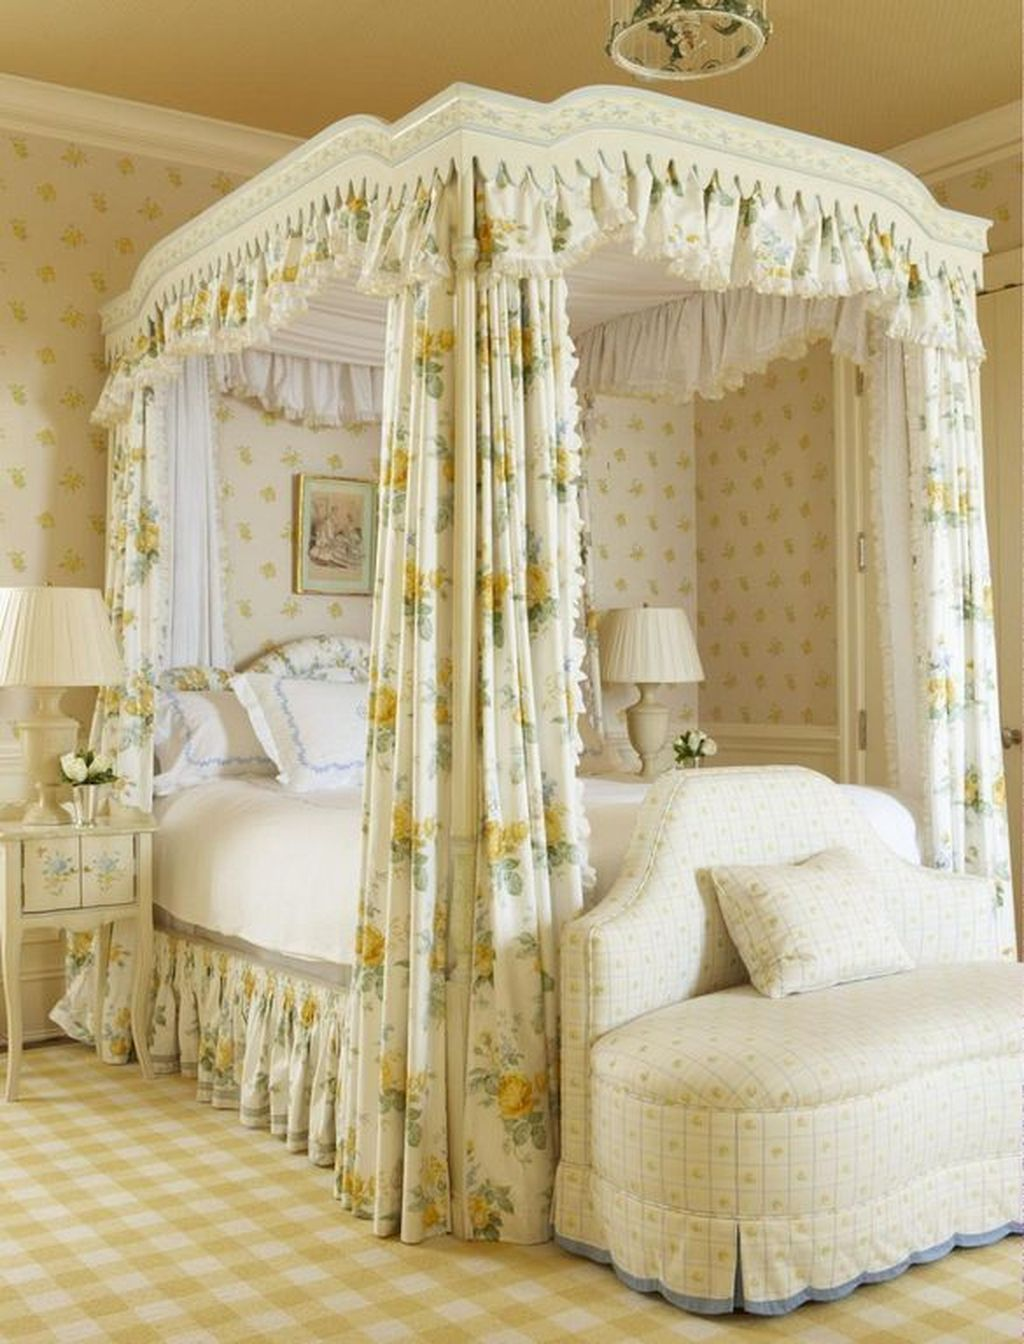 Lovely Romantic Canopy Bed Design Ideas For Your Bedroom 02